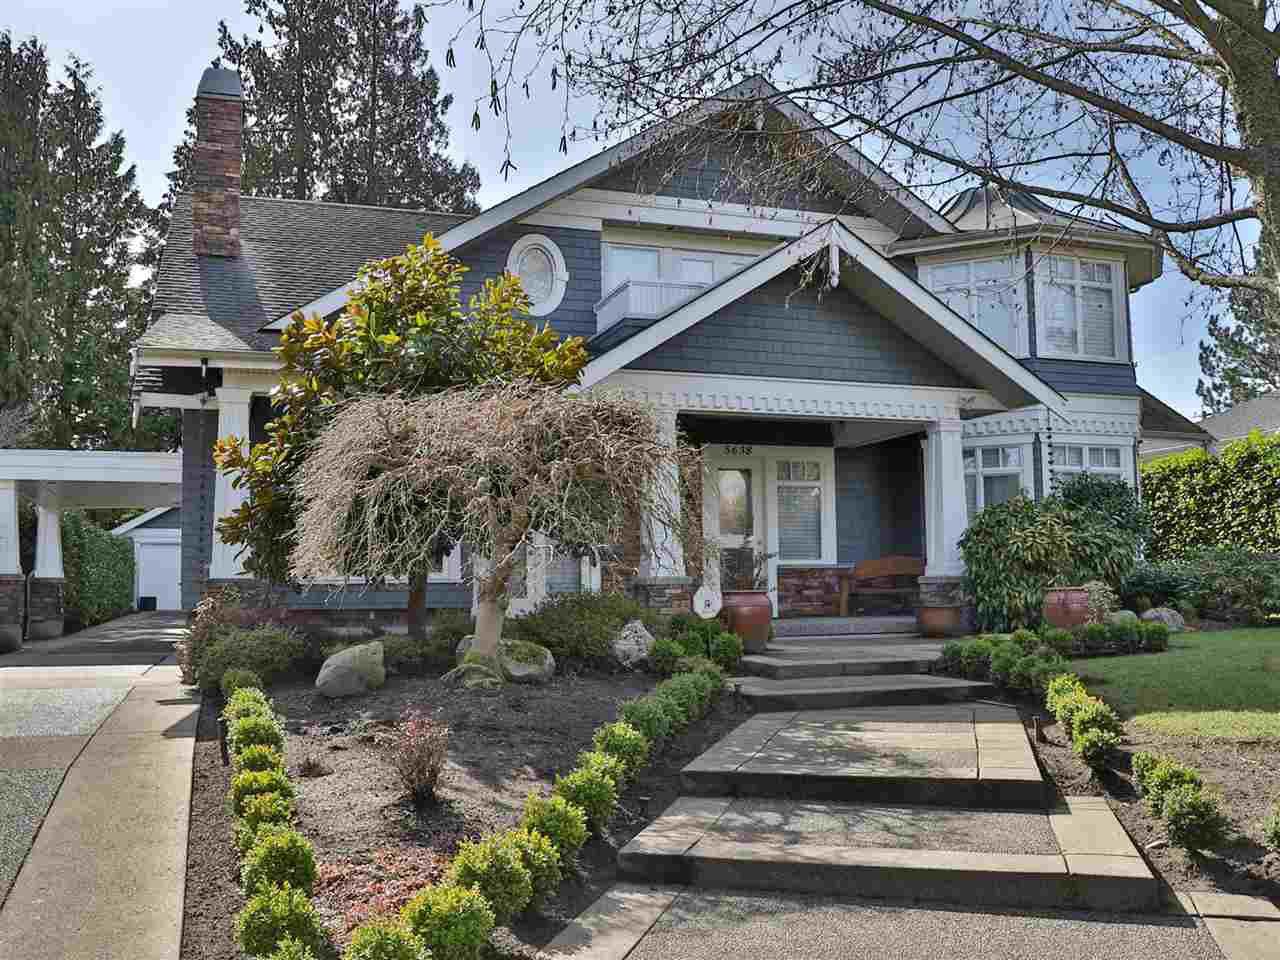 Main Photo: 5638 MCMASTER Road in Vancouver: University VW House for sale (Vancouver West)  : MLS®# R2429611